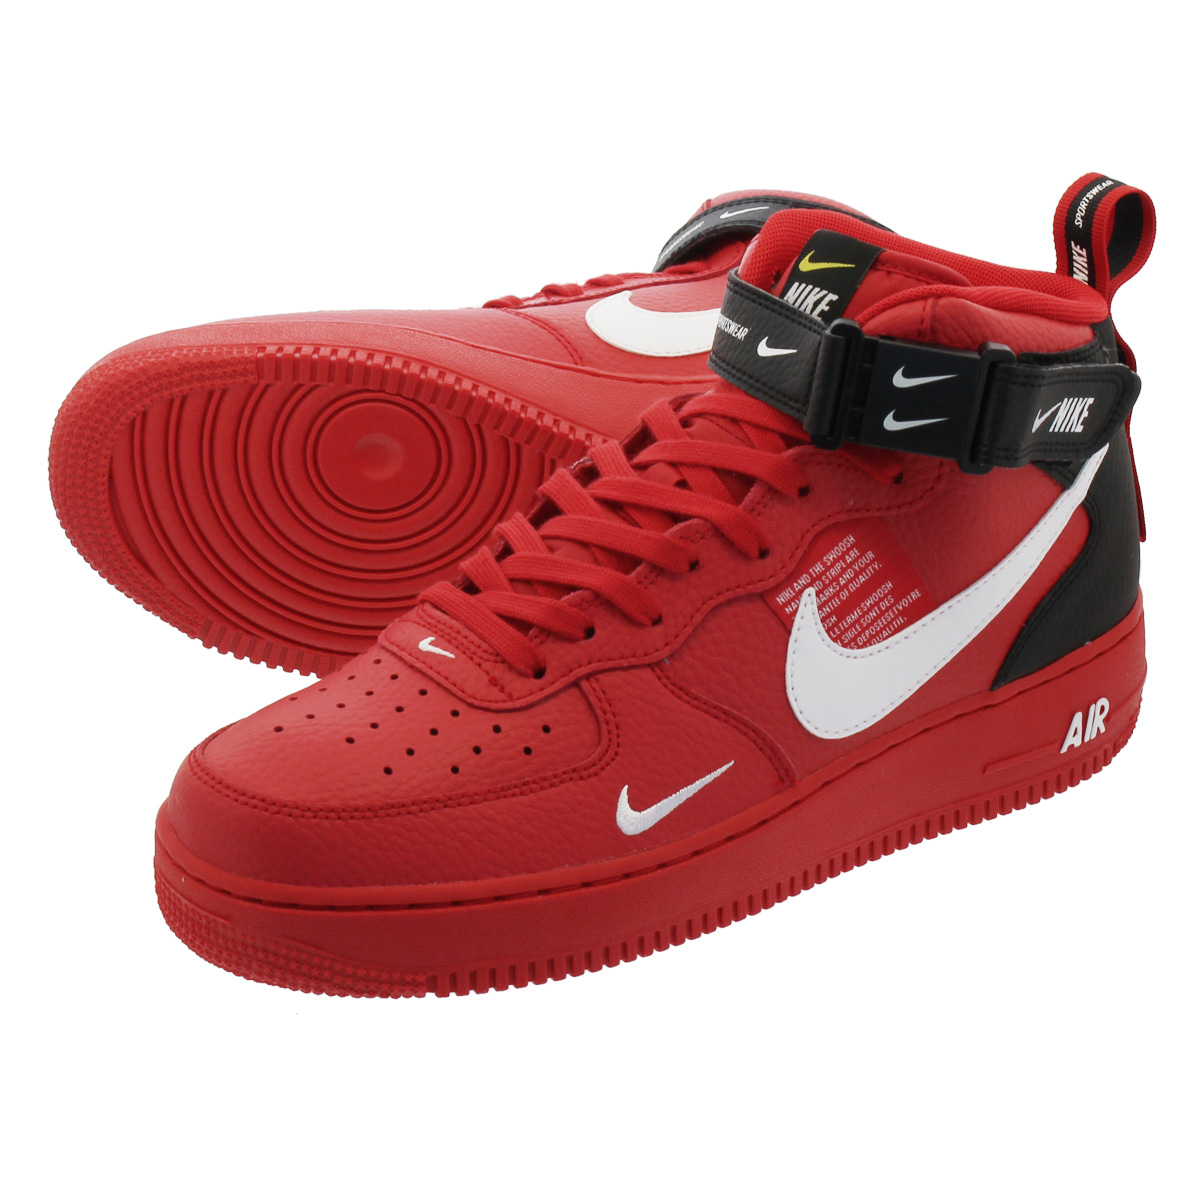 on sale 6f31f bf2fb NIKE AIR FORCE 1 MID  07 LV8 UTILITY Nike air force 1 mid  07 ...